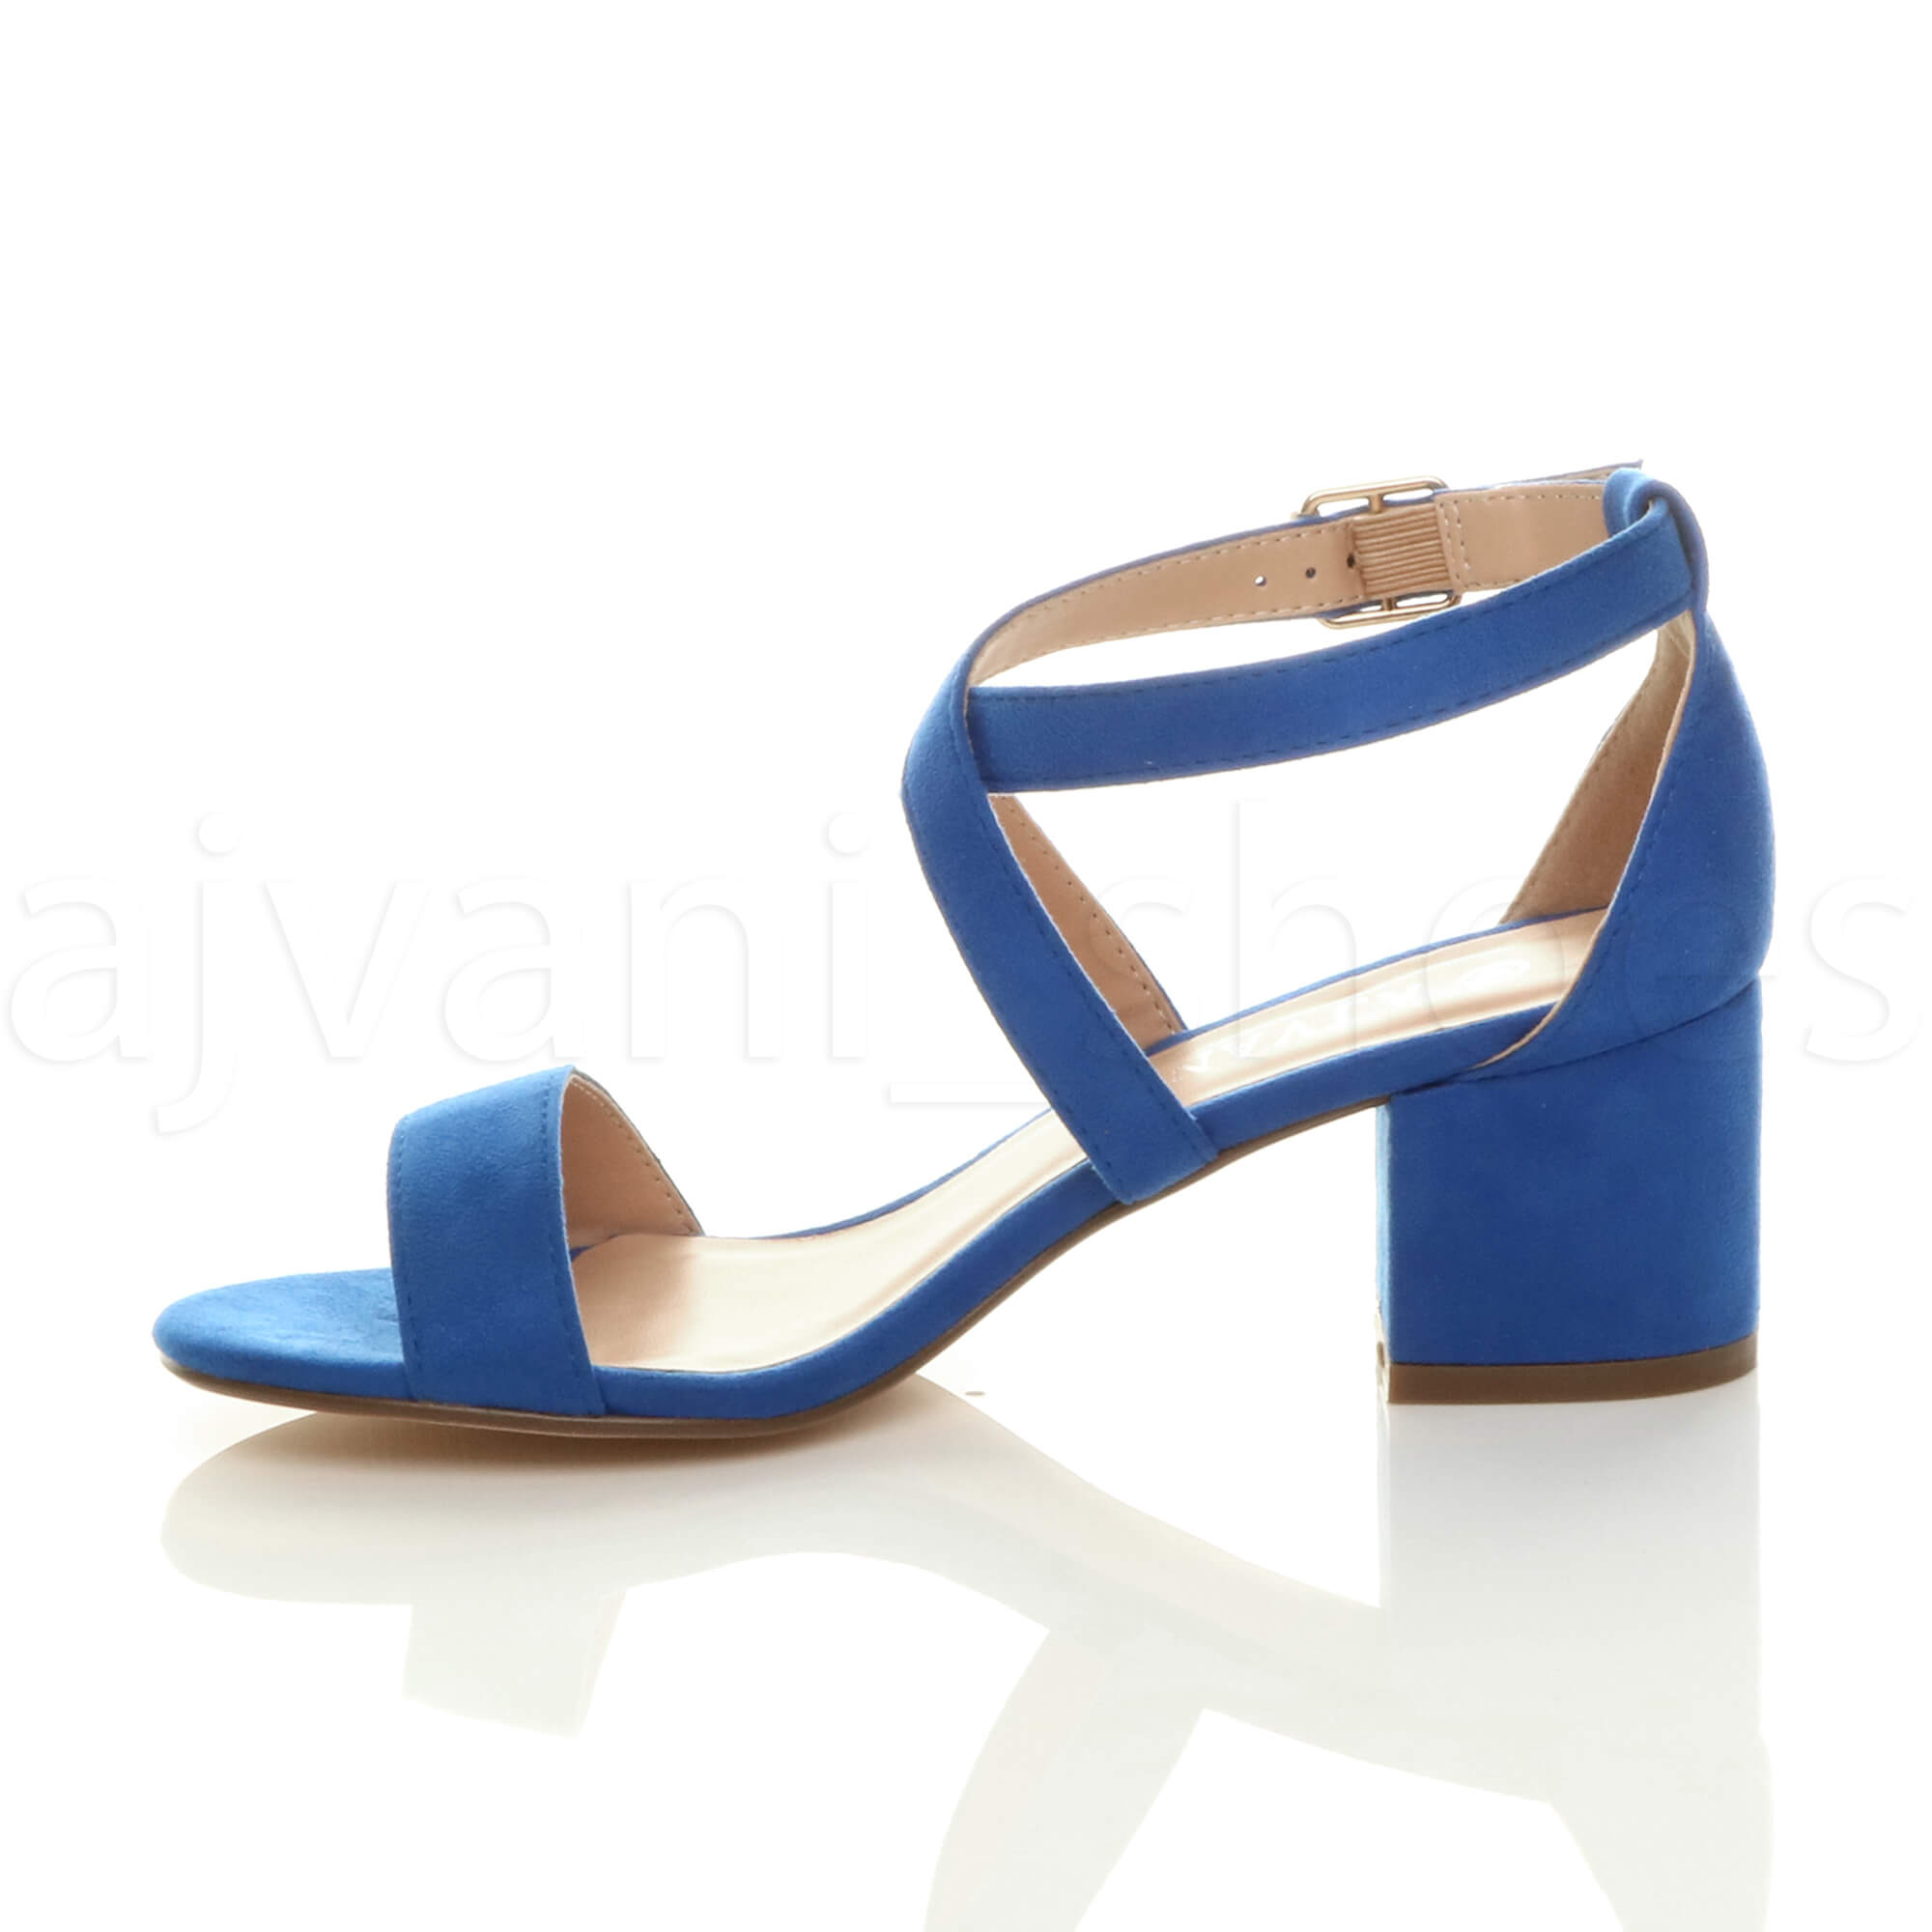 WOMENS-LADIES-MID-LOW-BLOCK-HEEL-CROSS-STRAPS-PARTY-STRAPPY-SANDALS-SHOES-SIZE thumbnail 14